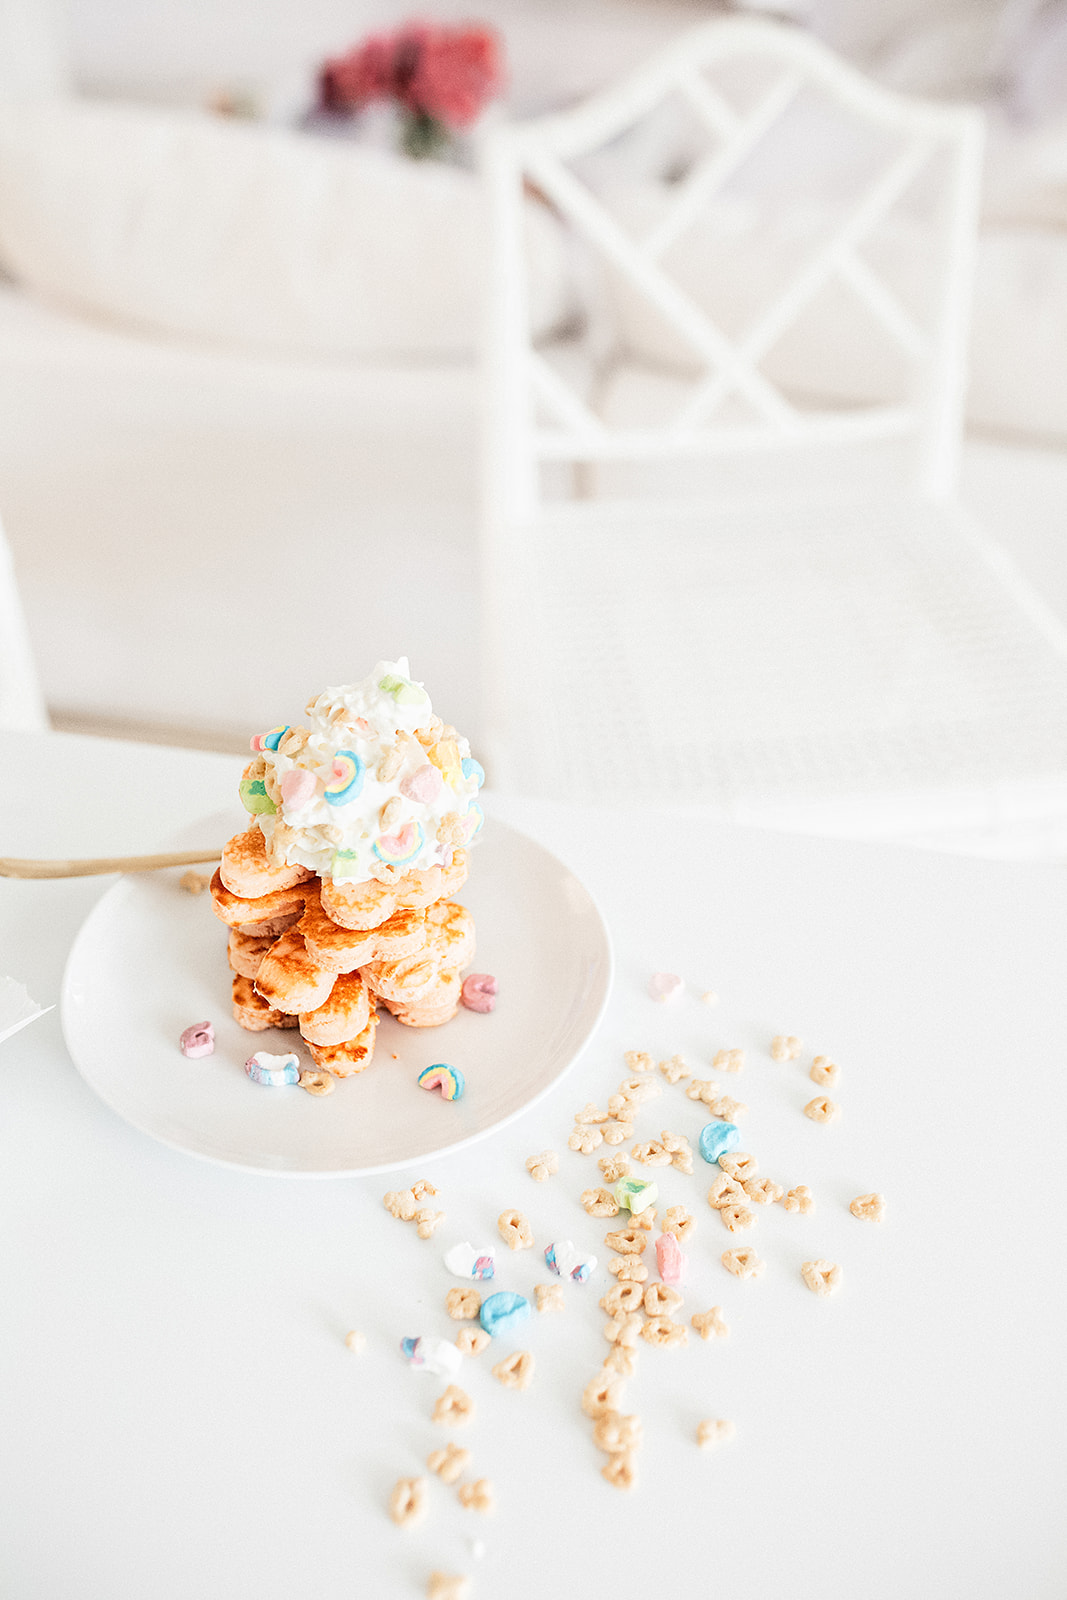 Shamrock Pancakes by Cooking With Confetti